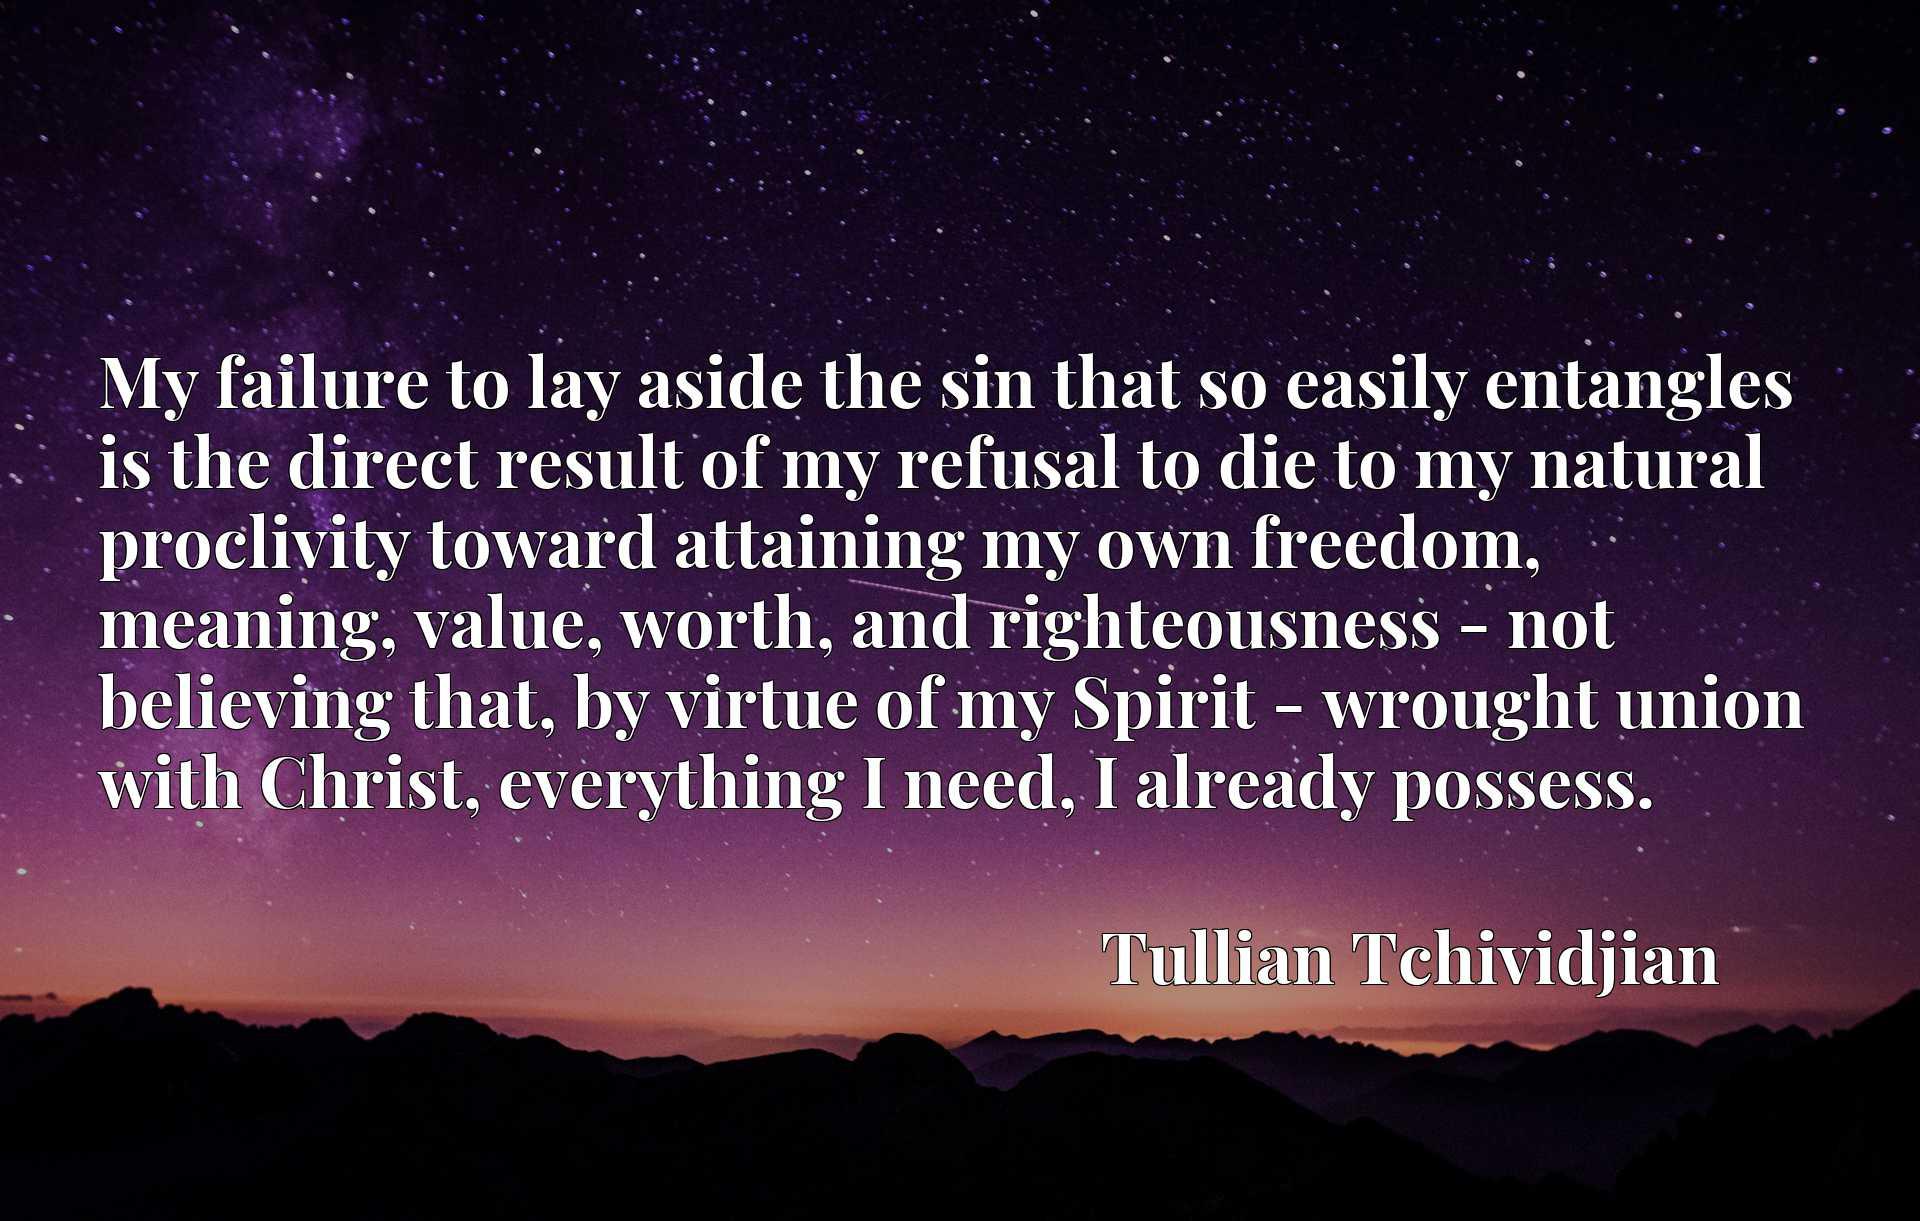 My failure to lay aside the sin that so easily entangles is the direct result of my refusal to die to my natural proclivity toward attaining my own freedom, meaning, value, worth, and righteousness - not believing that, by virtue of my Spirit - wrought union with Christ, everything I need, I already possess.